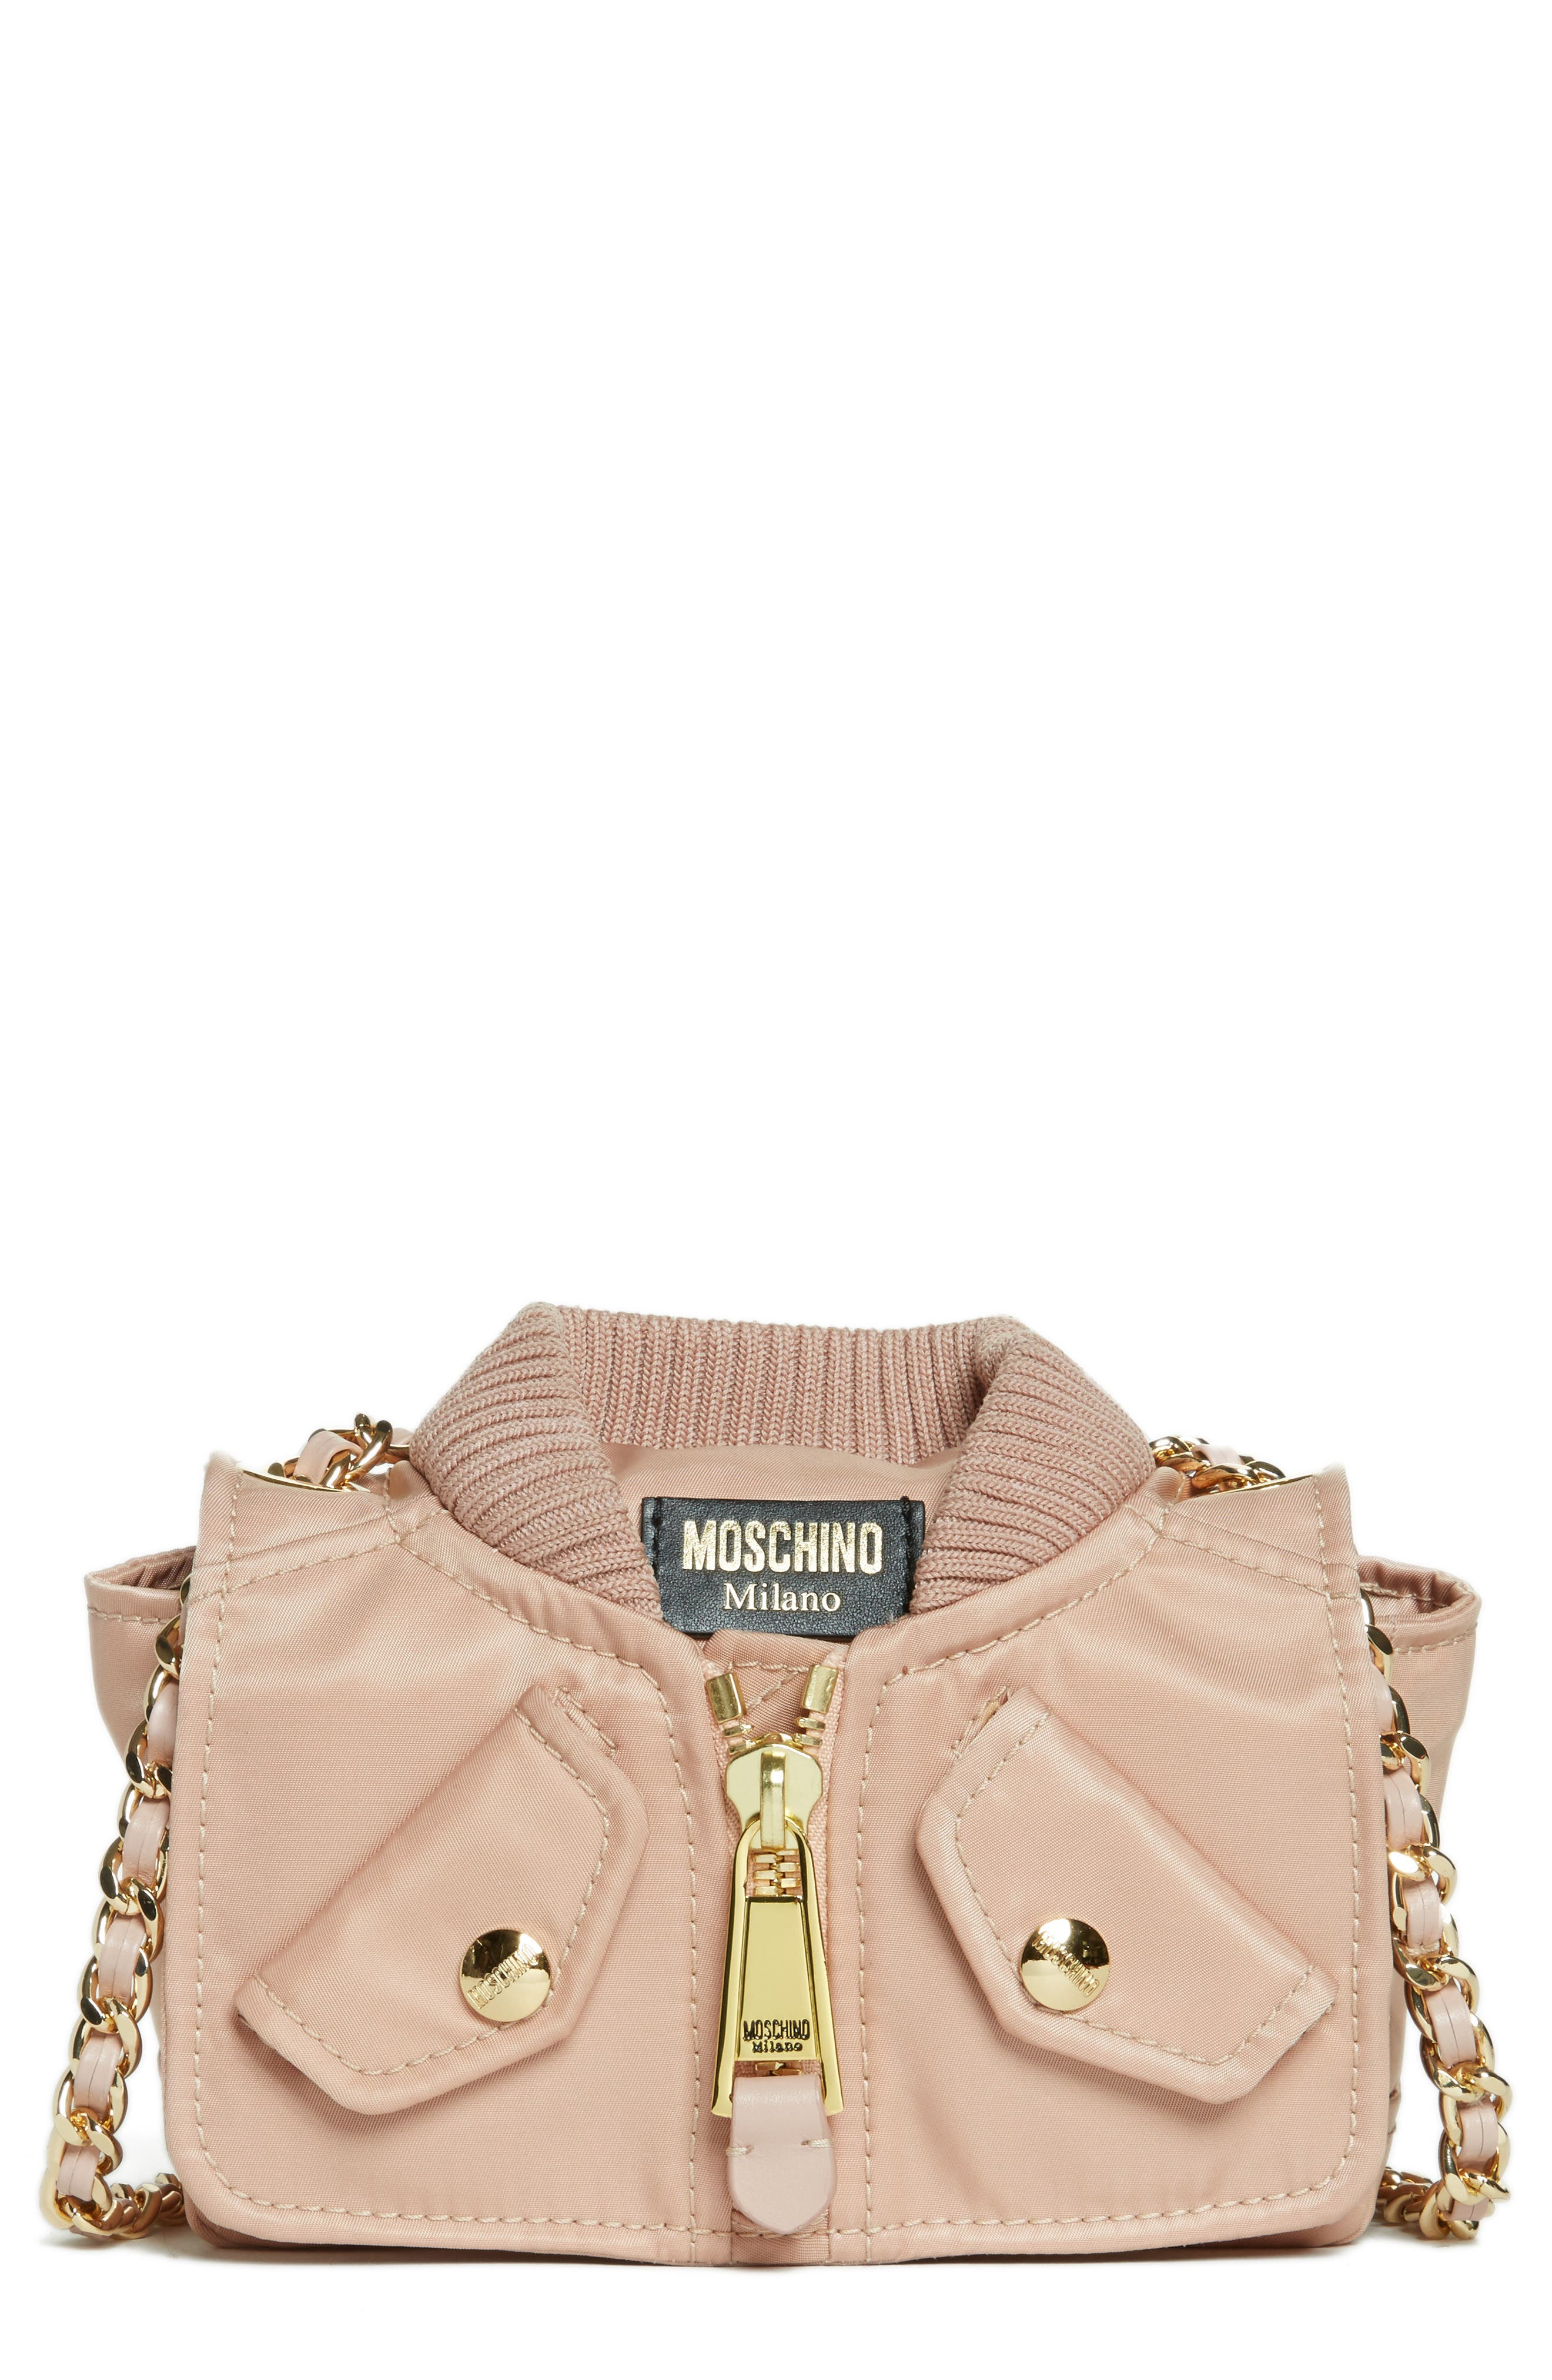 Main Image - Moschino Small Biker Jacket Nylon Shoulder Bag